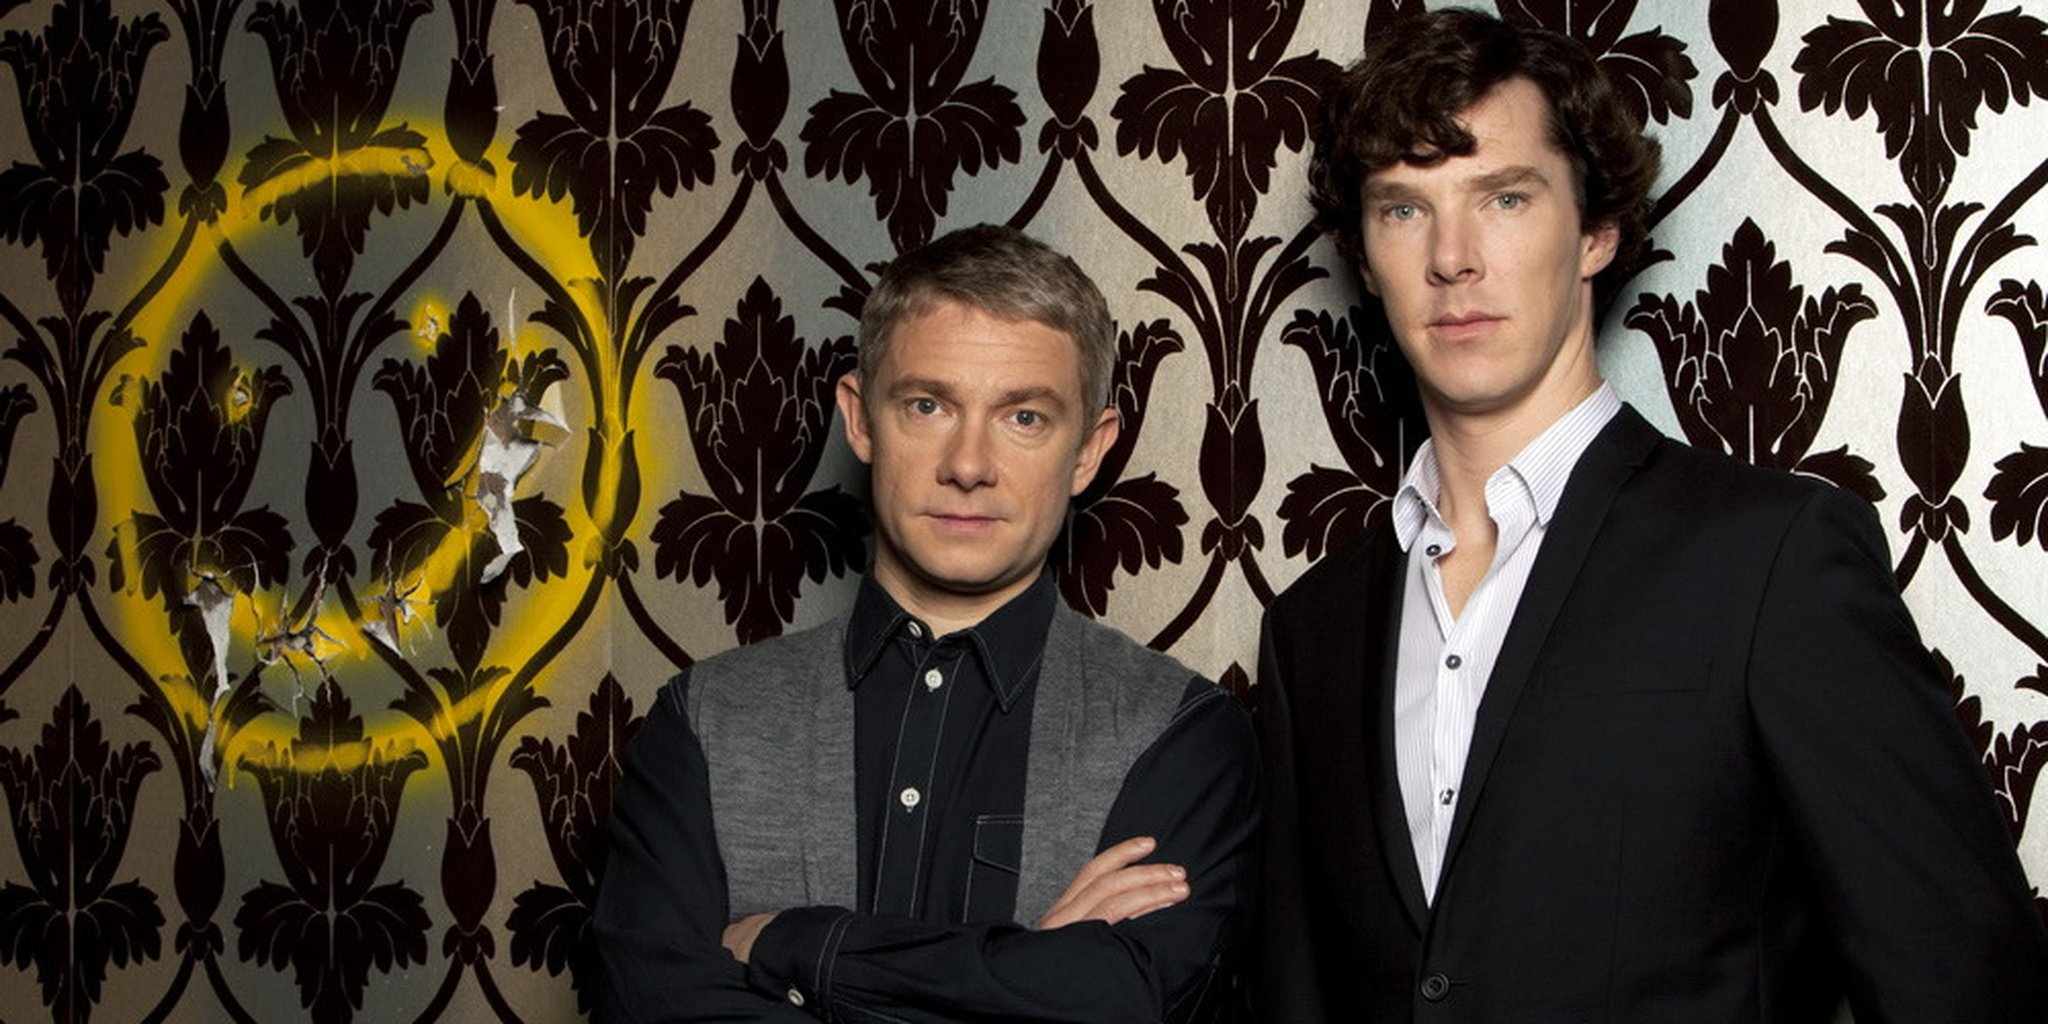 Bendict Cumberbatch and Martin Freeman